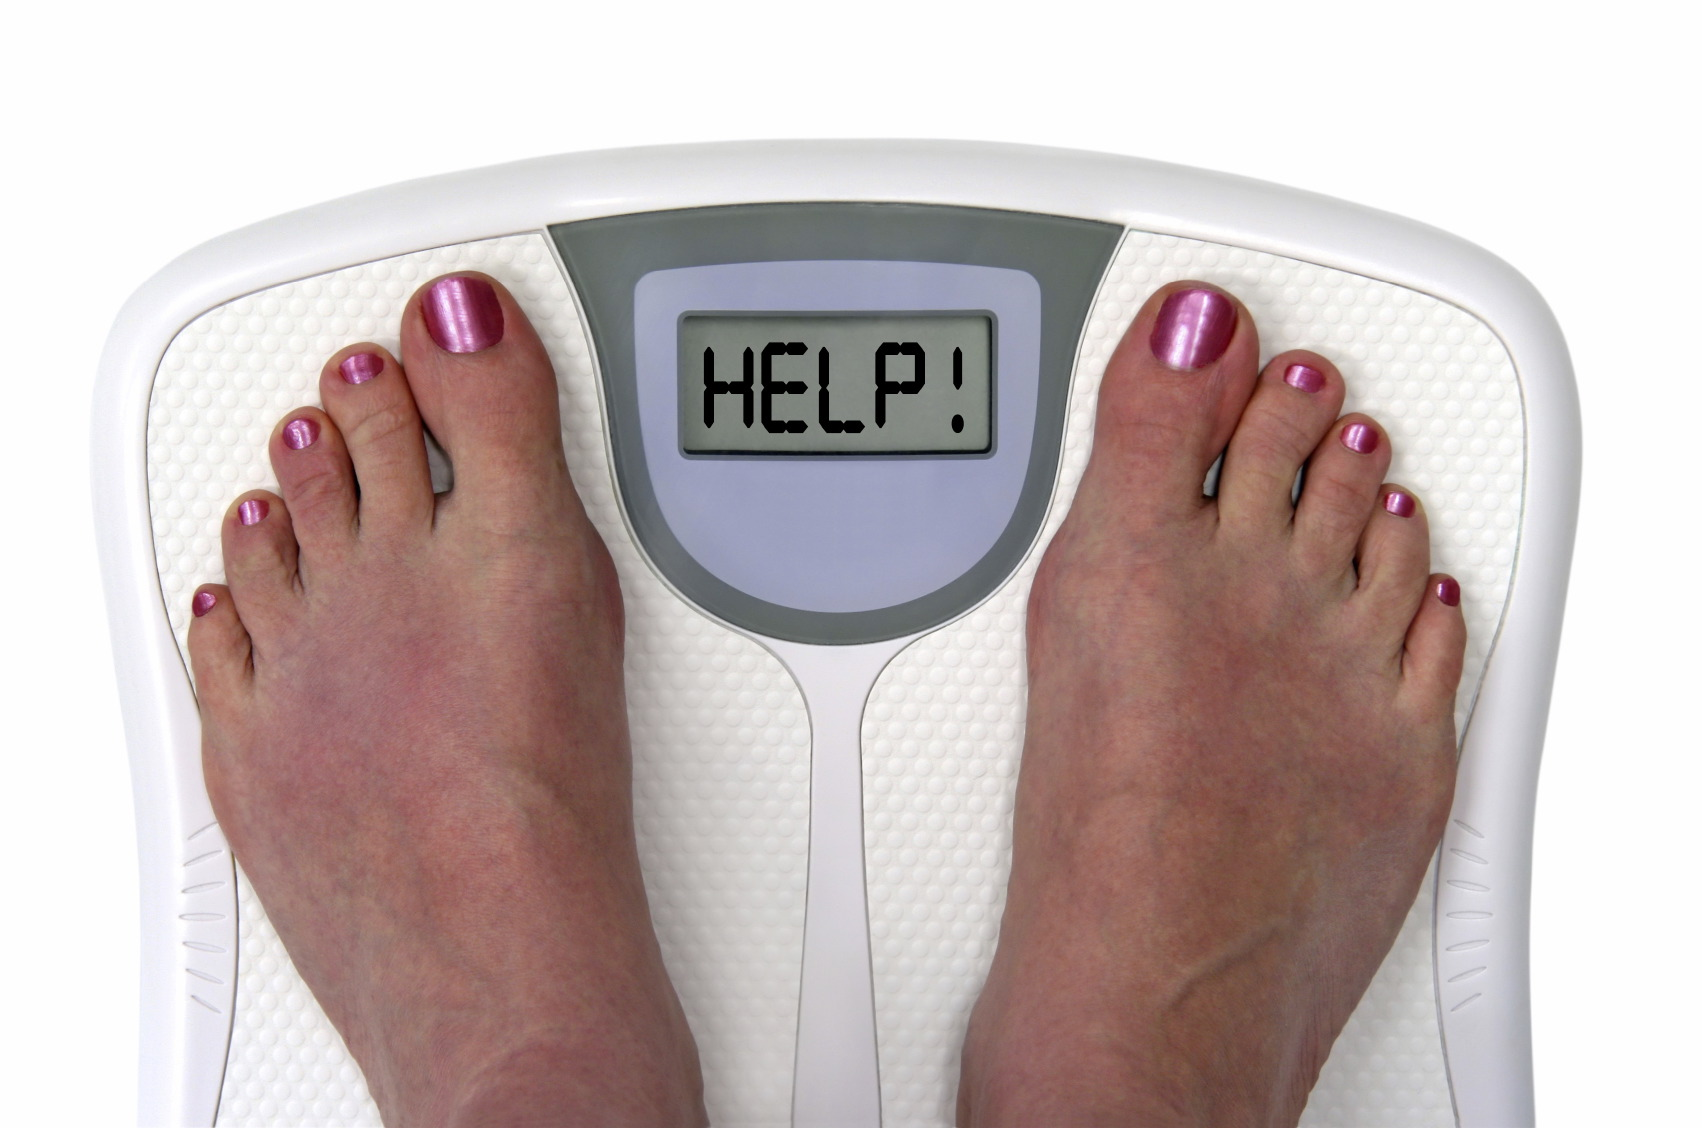 11. Lack of a quality sleep may cause weight gain.